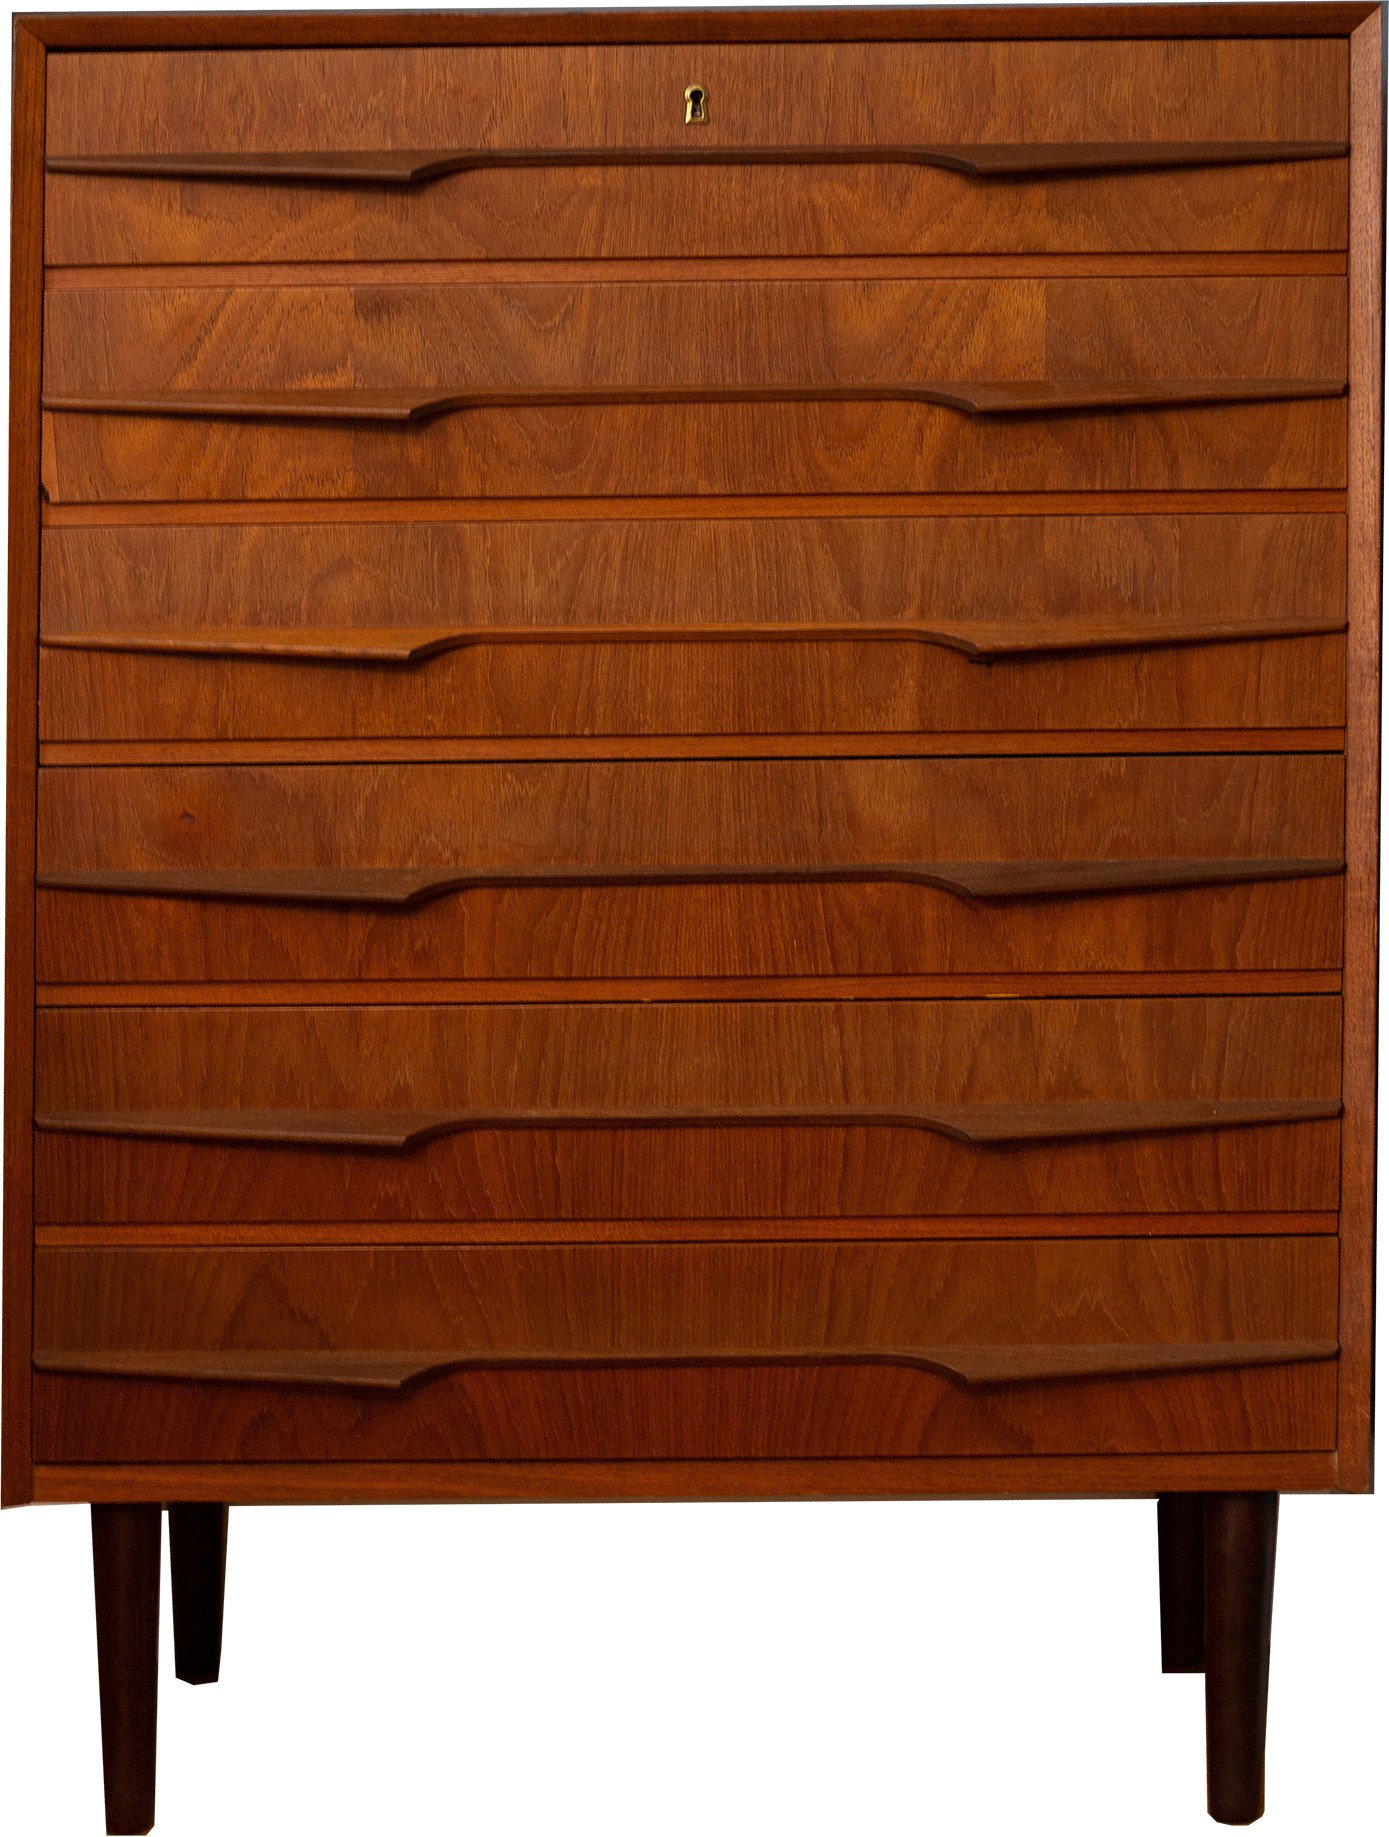 Chest of Drawers, Denmark, 1970s